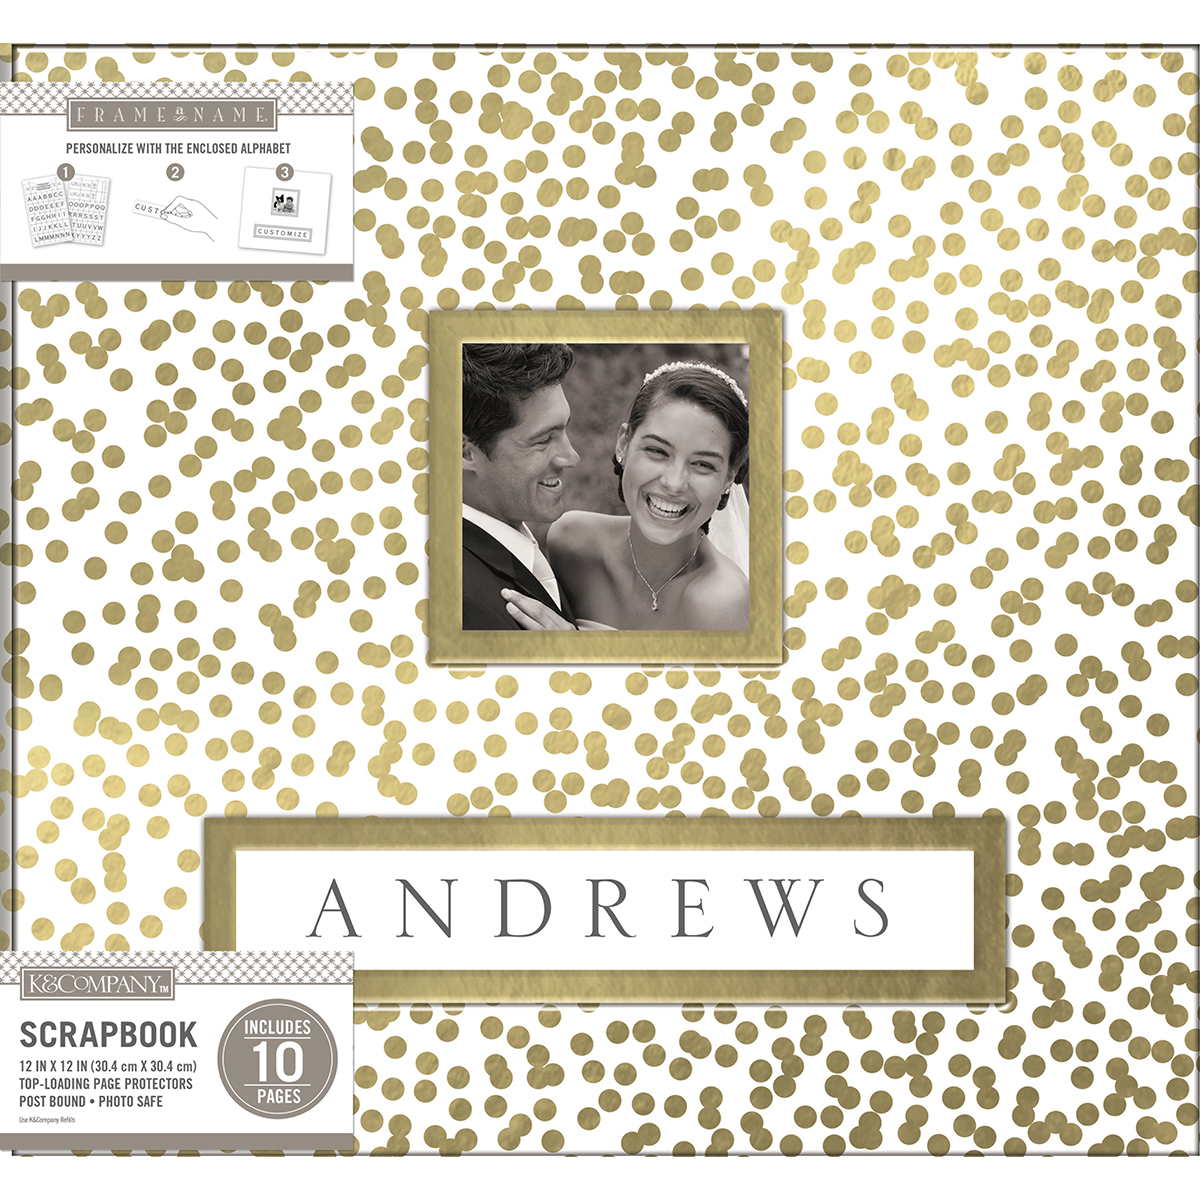 American Crafts K&Company Frame A Name Post Bound Album 12X12 inches, Gold Foil Scatter Dots